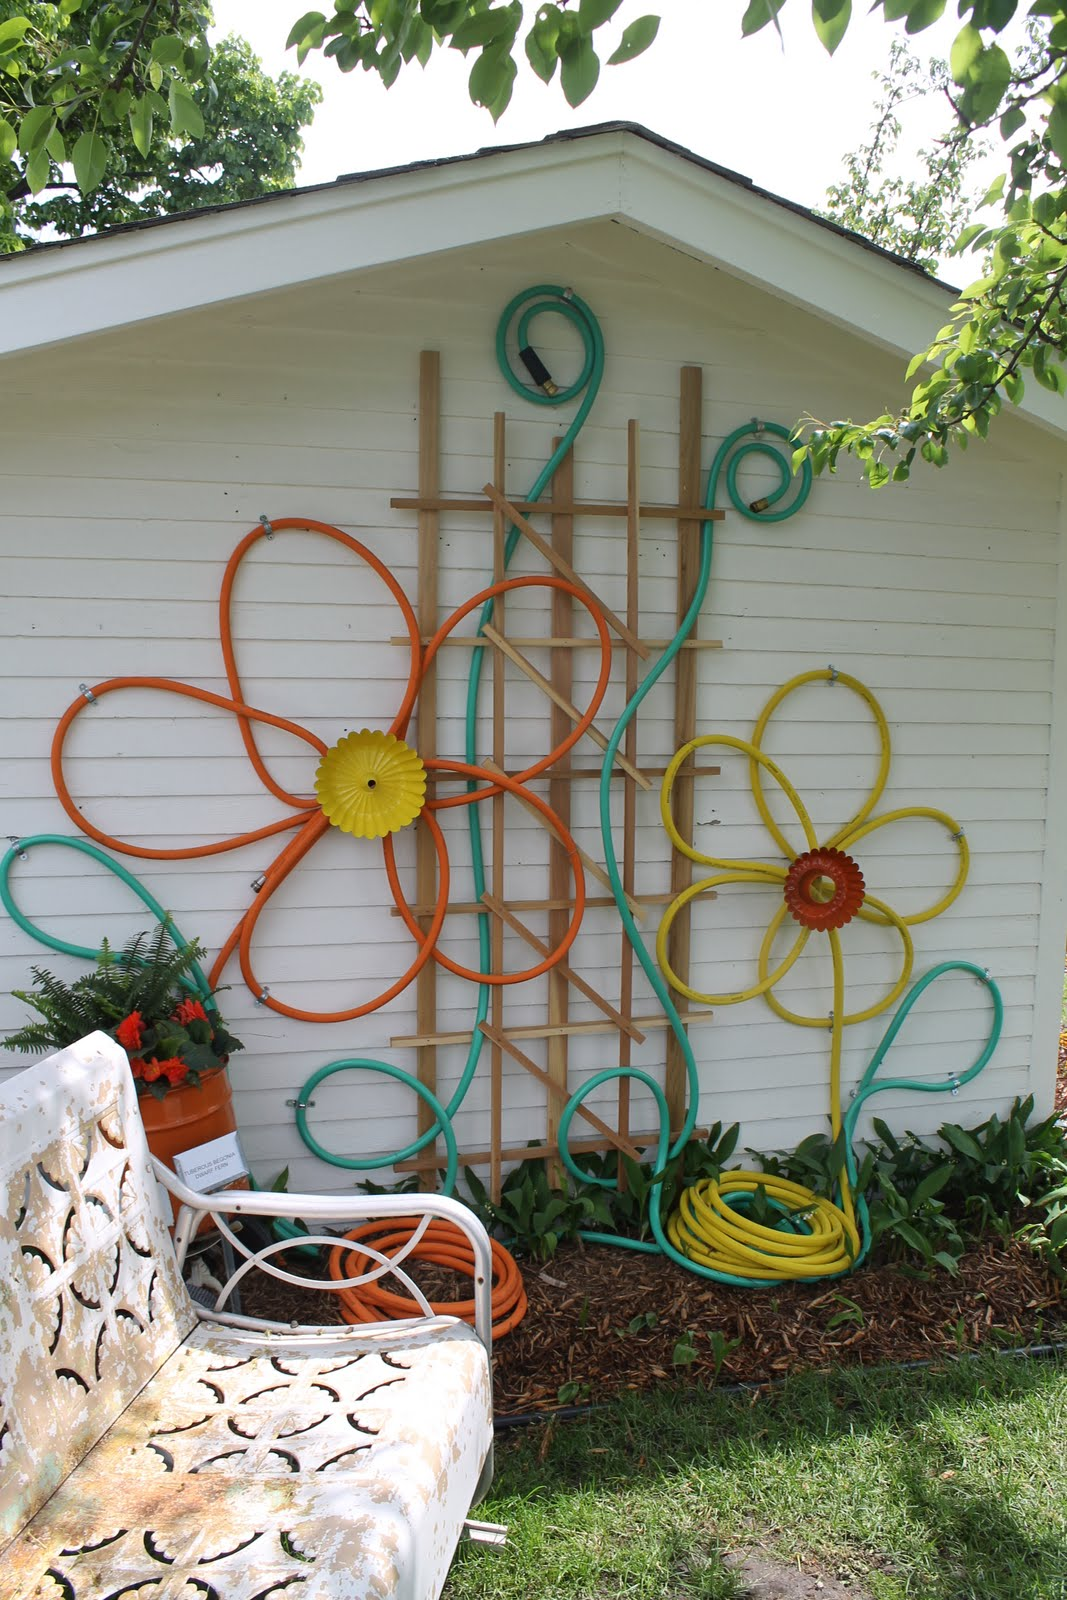 How to beautify your house outdoor wall dcor ideas make flowers from hoses for outdoor house decor solutioingenieria Gallery